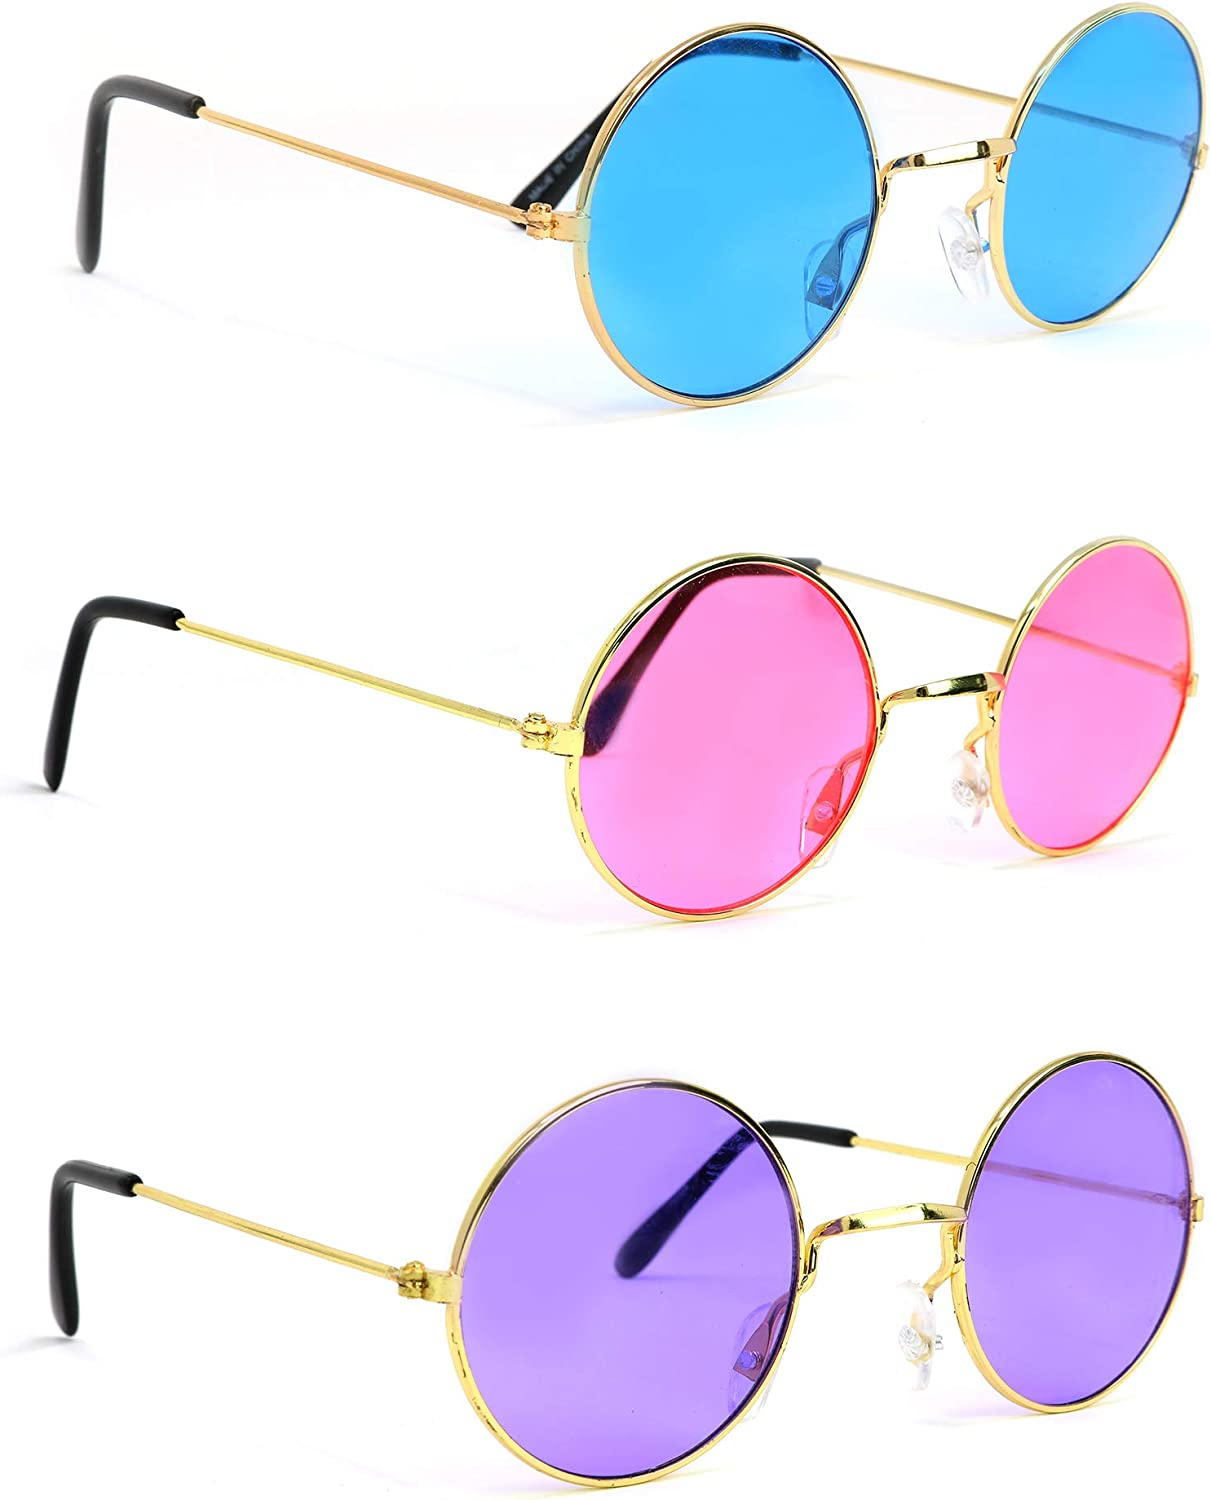 Amazon Com Skeleteen Tinted Round Hippie Glasses Pink Purple And Blue 60 S Style Hipster Circle Sunglasses 3 Pairs Toys Games